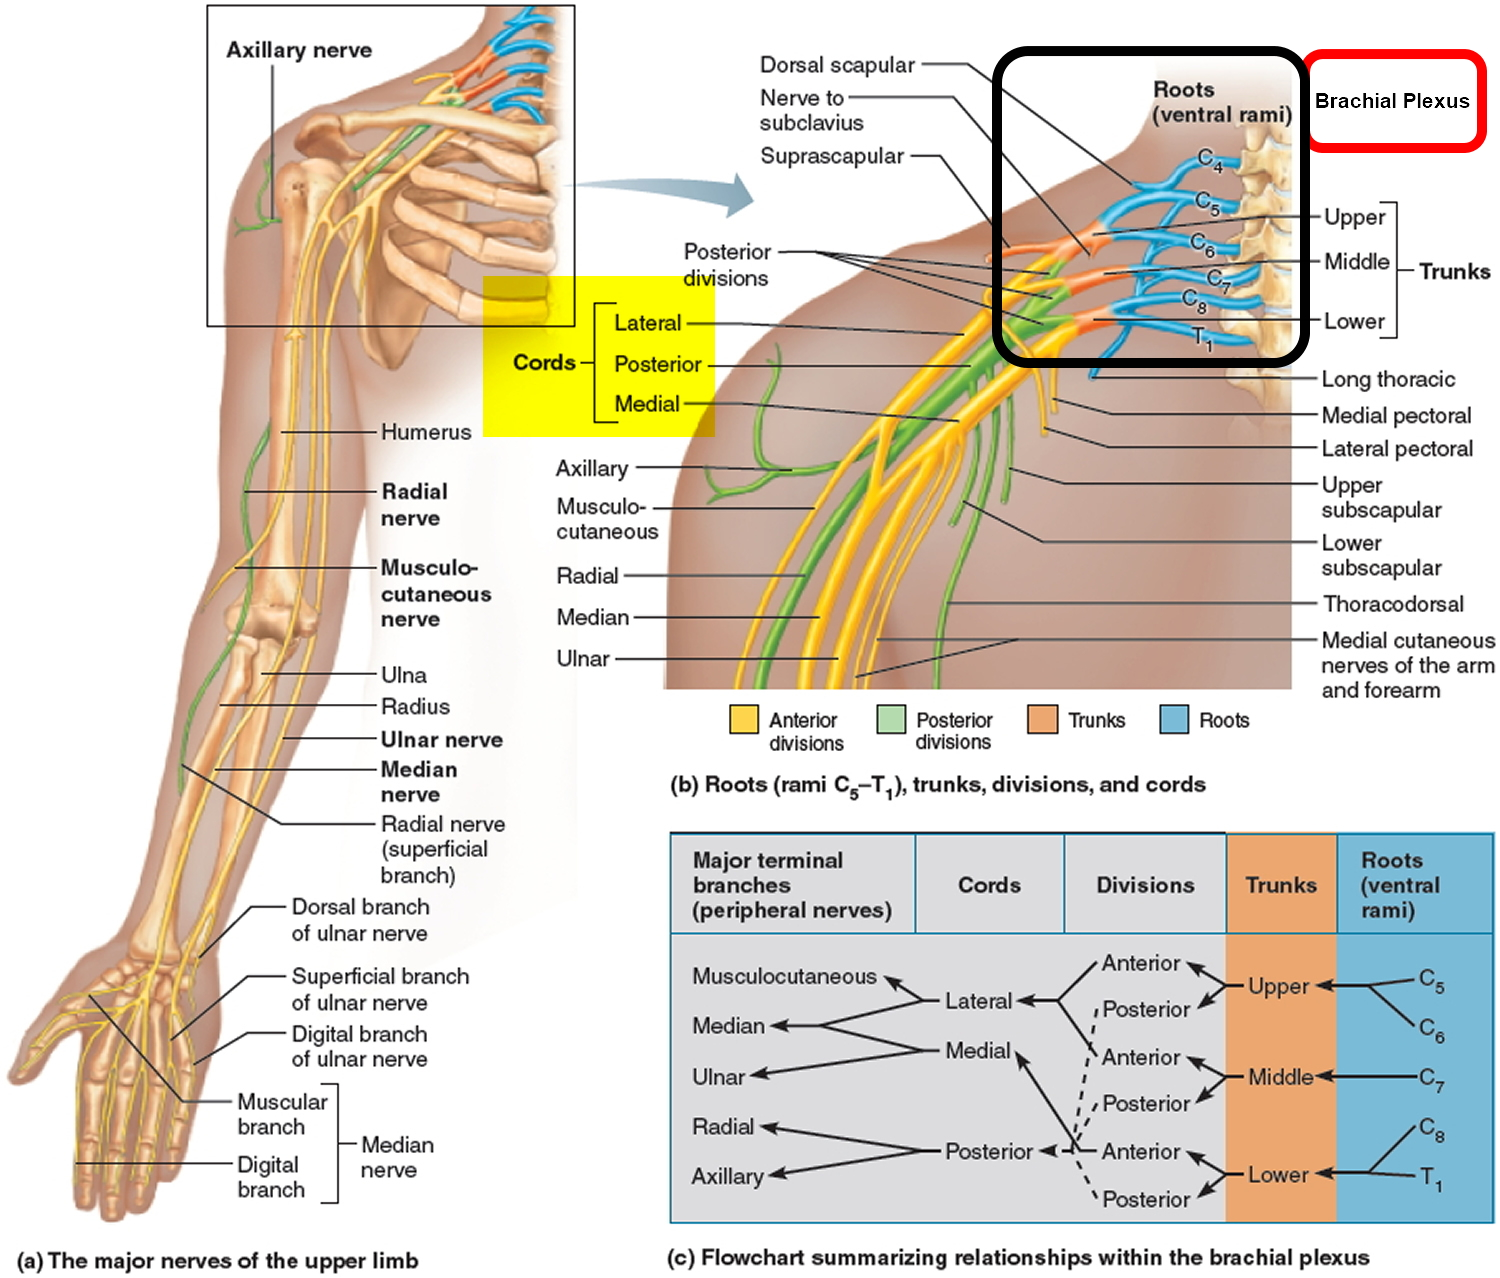 brachial plexus The brachial plexus is group, or network, of nerves that carry signals from the spinal cord to control the feeling and movement of shoulders, arms, elbows, wrists and hands.